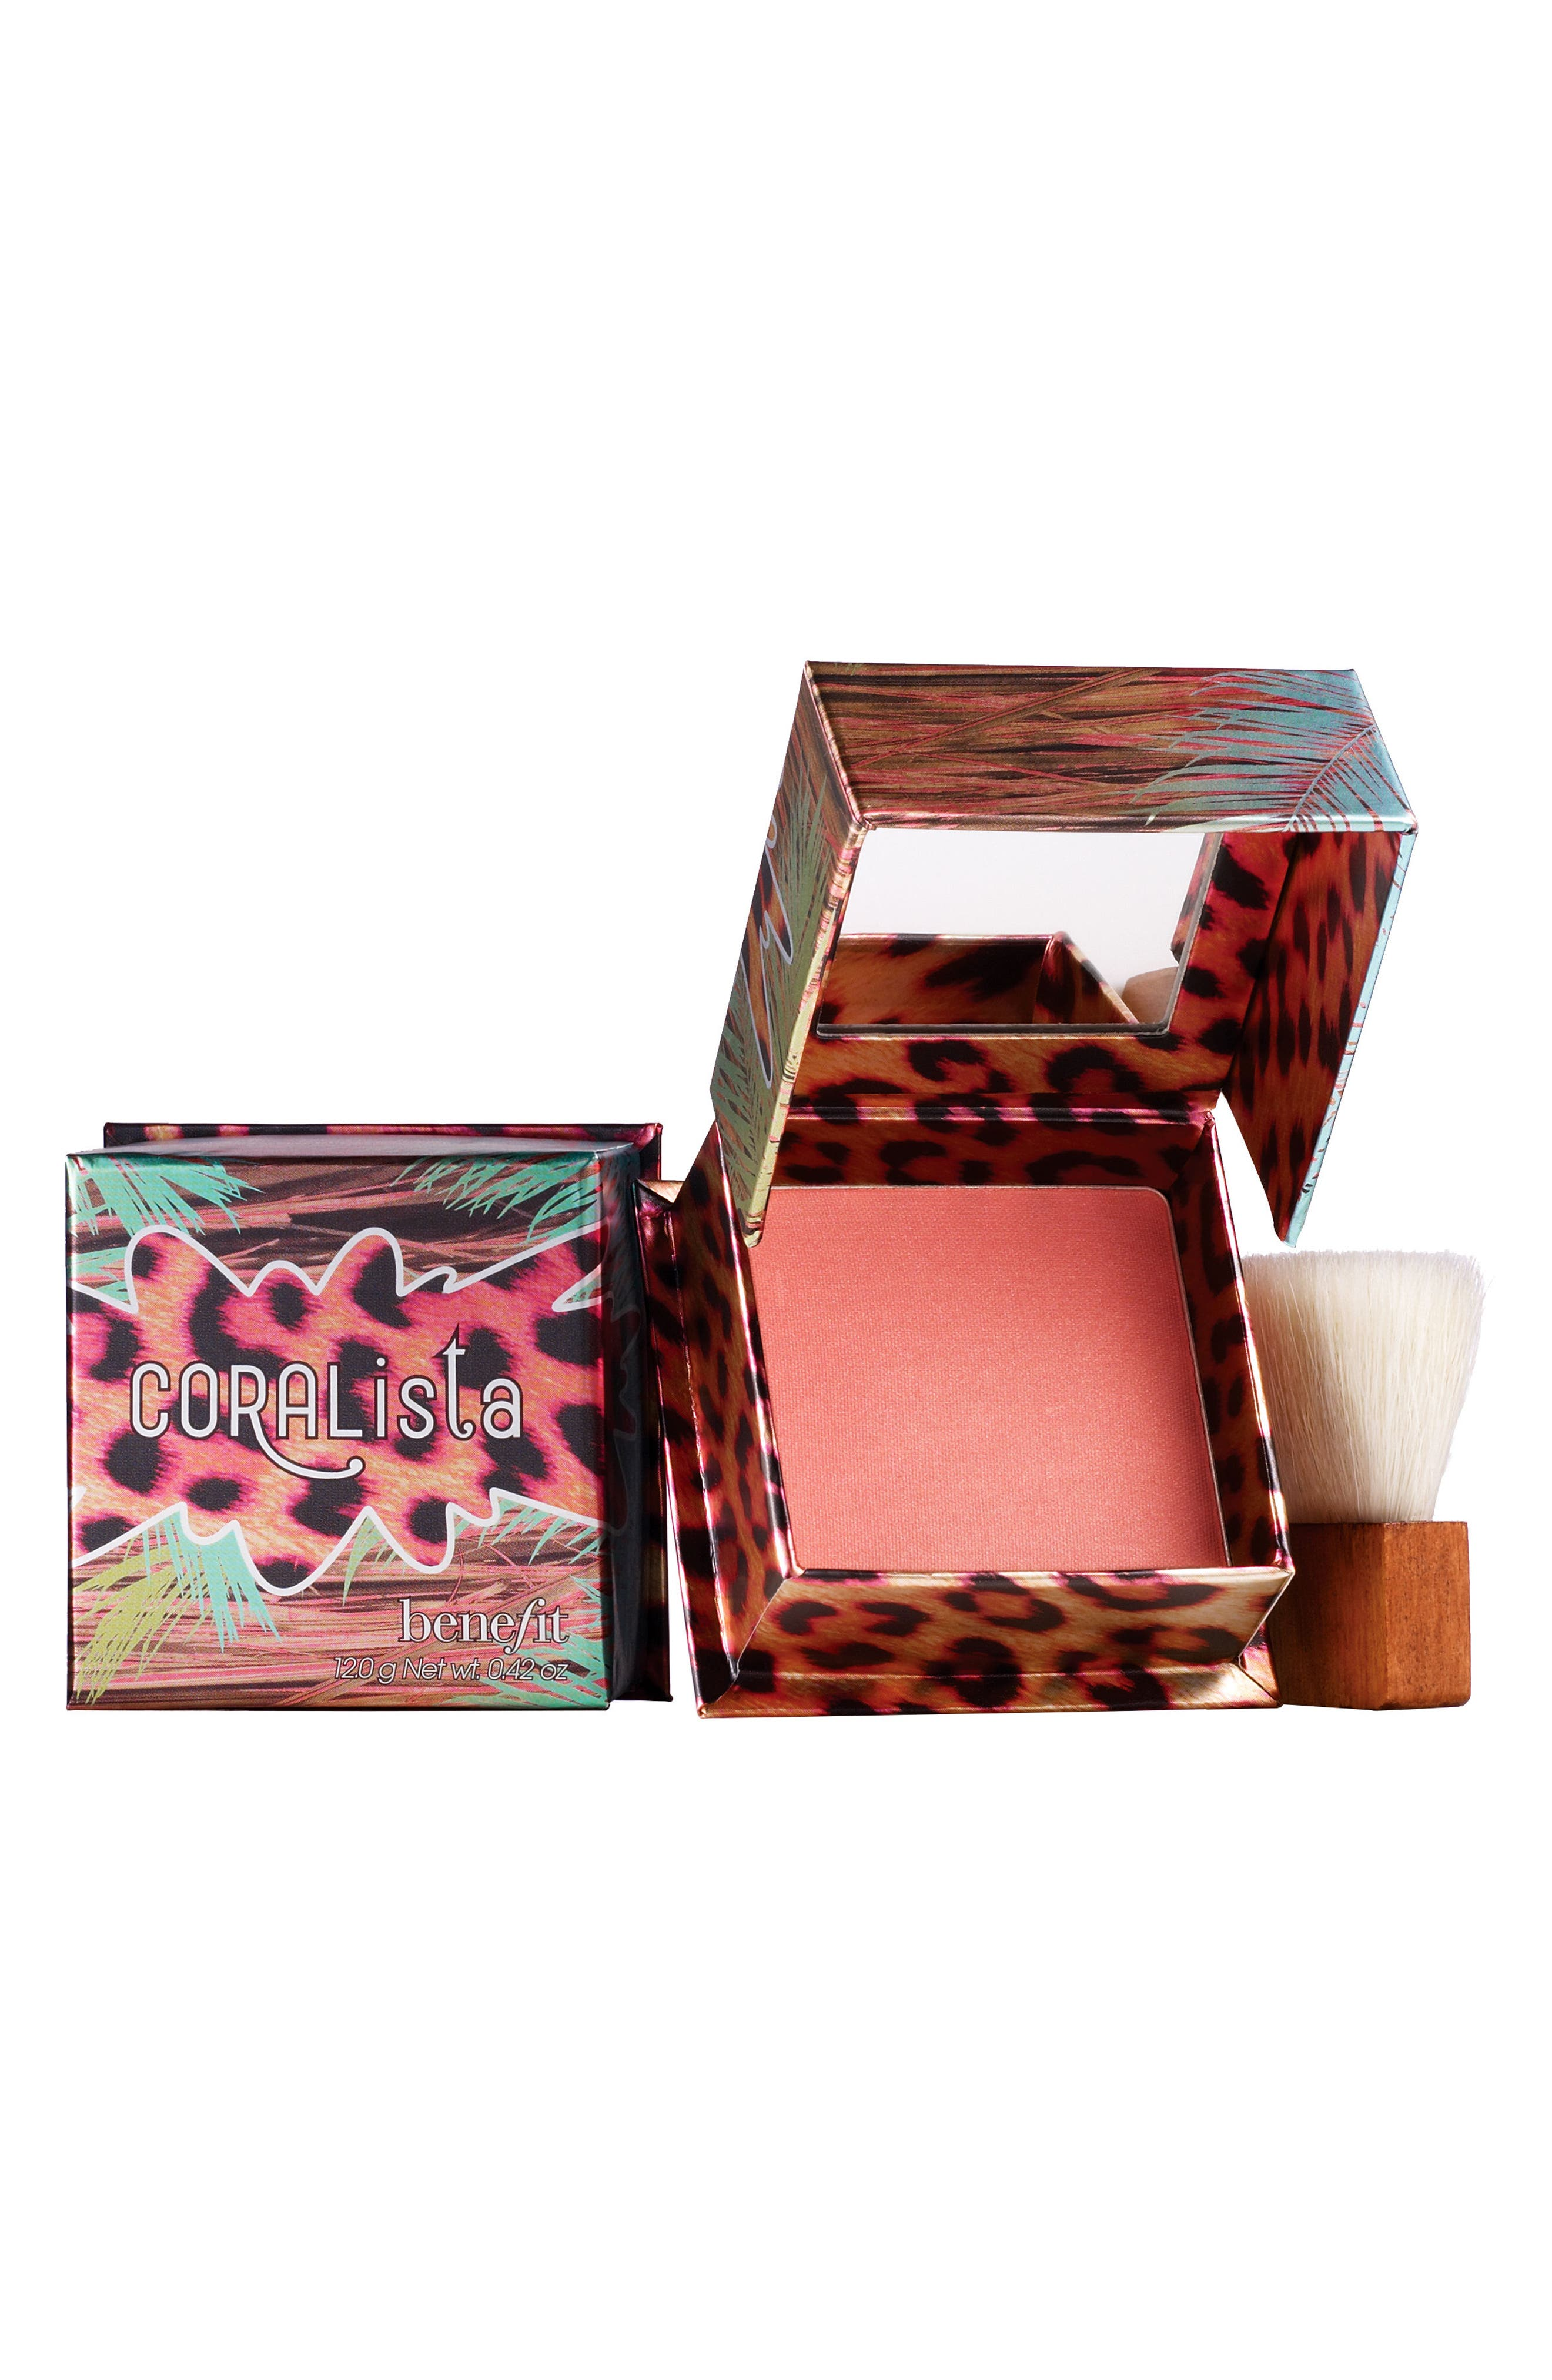 Alternate Image 1 Selected - Benefit CORALista Coral Powder Blush